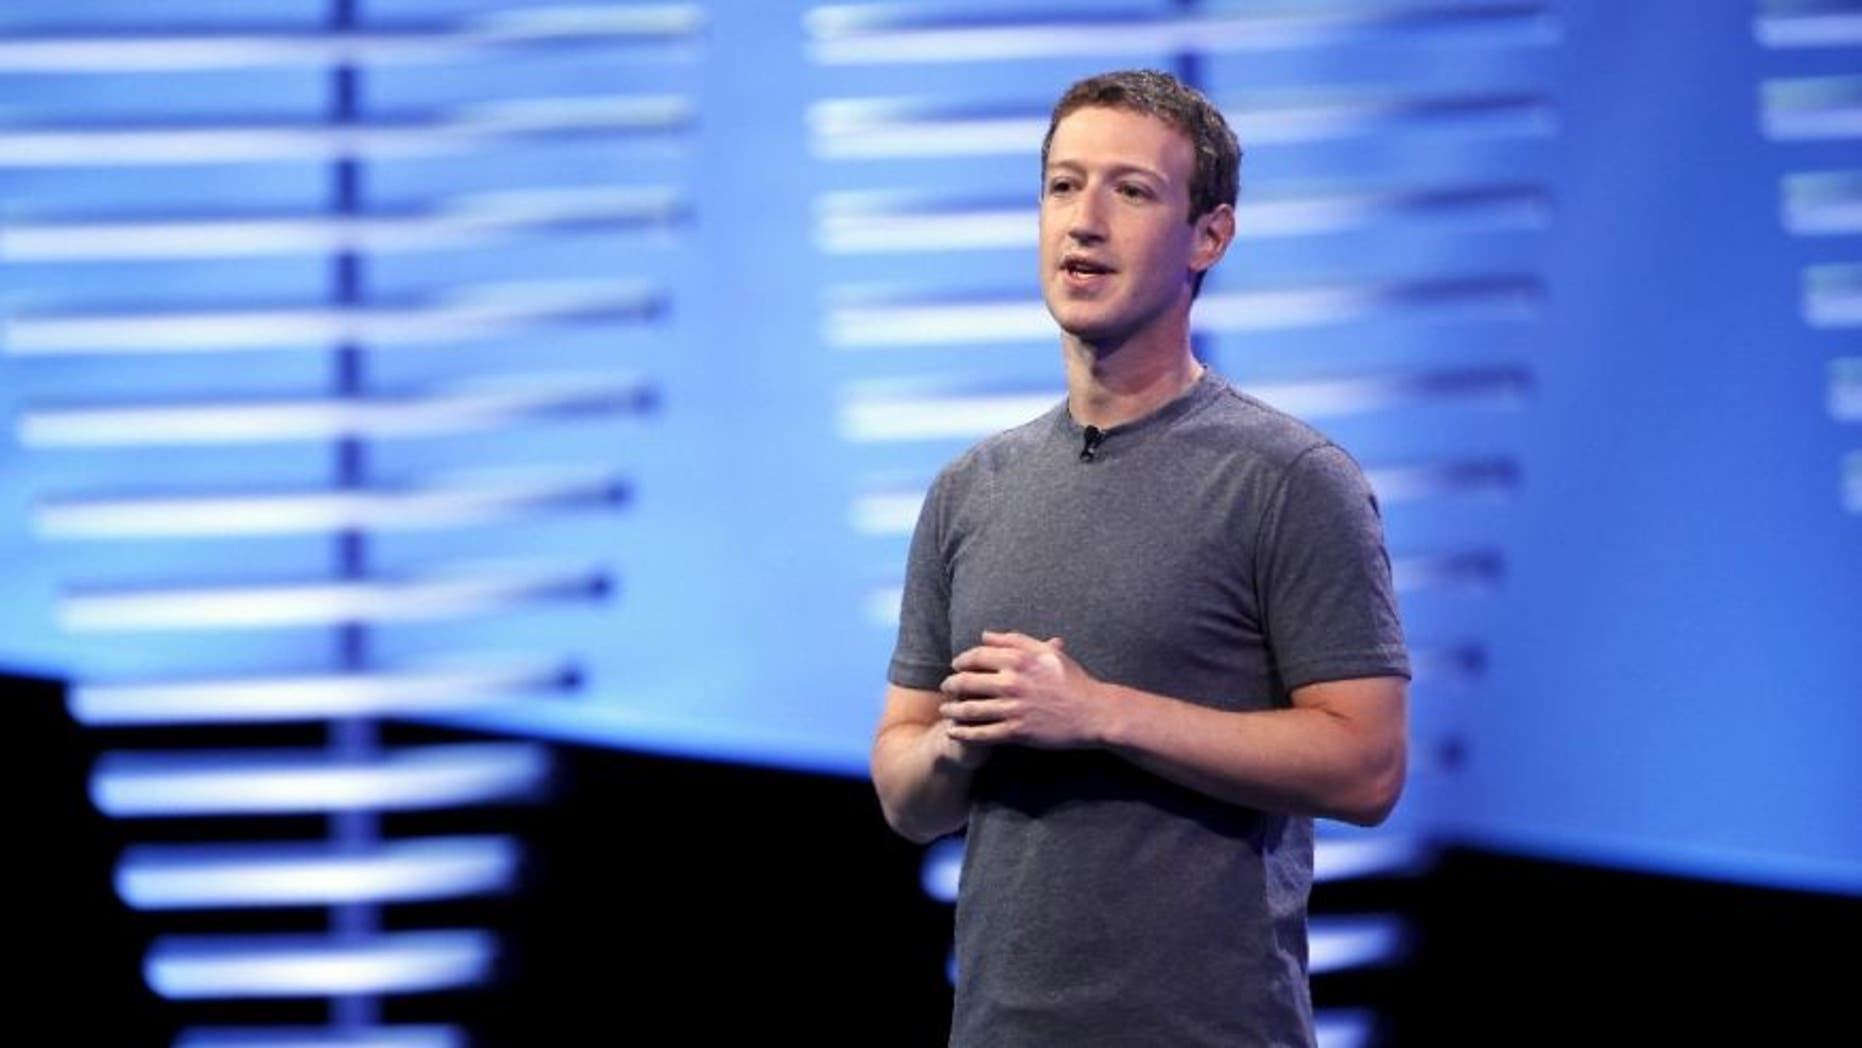 File photo - Facebook CEO Mark Zuckerberg speaks on stage during the Facebook F8 conference in San Francisco, California April 12, 2016.